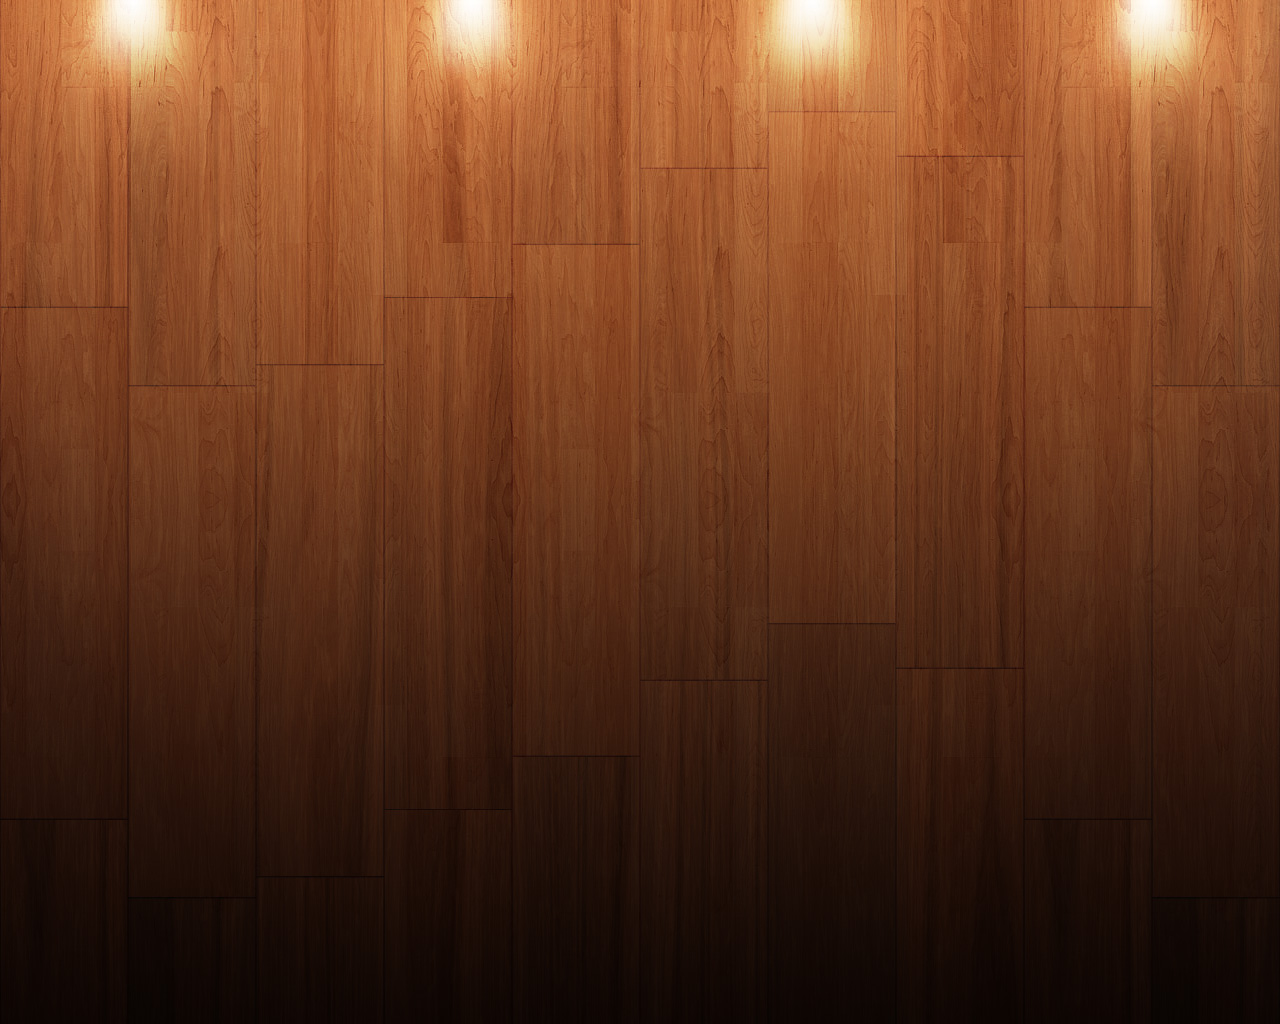 Wood paneling 02 by temporalvistasquash desktop wallpaper for Wood wallpaper for walls